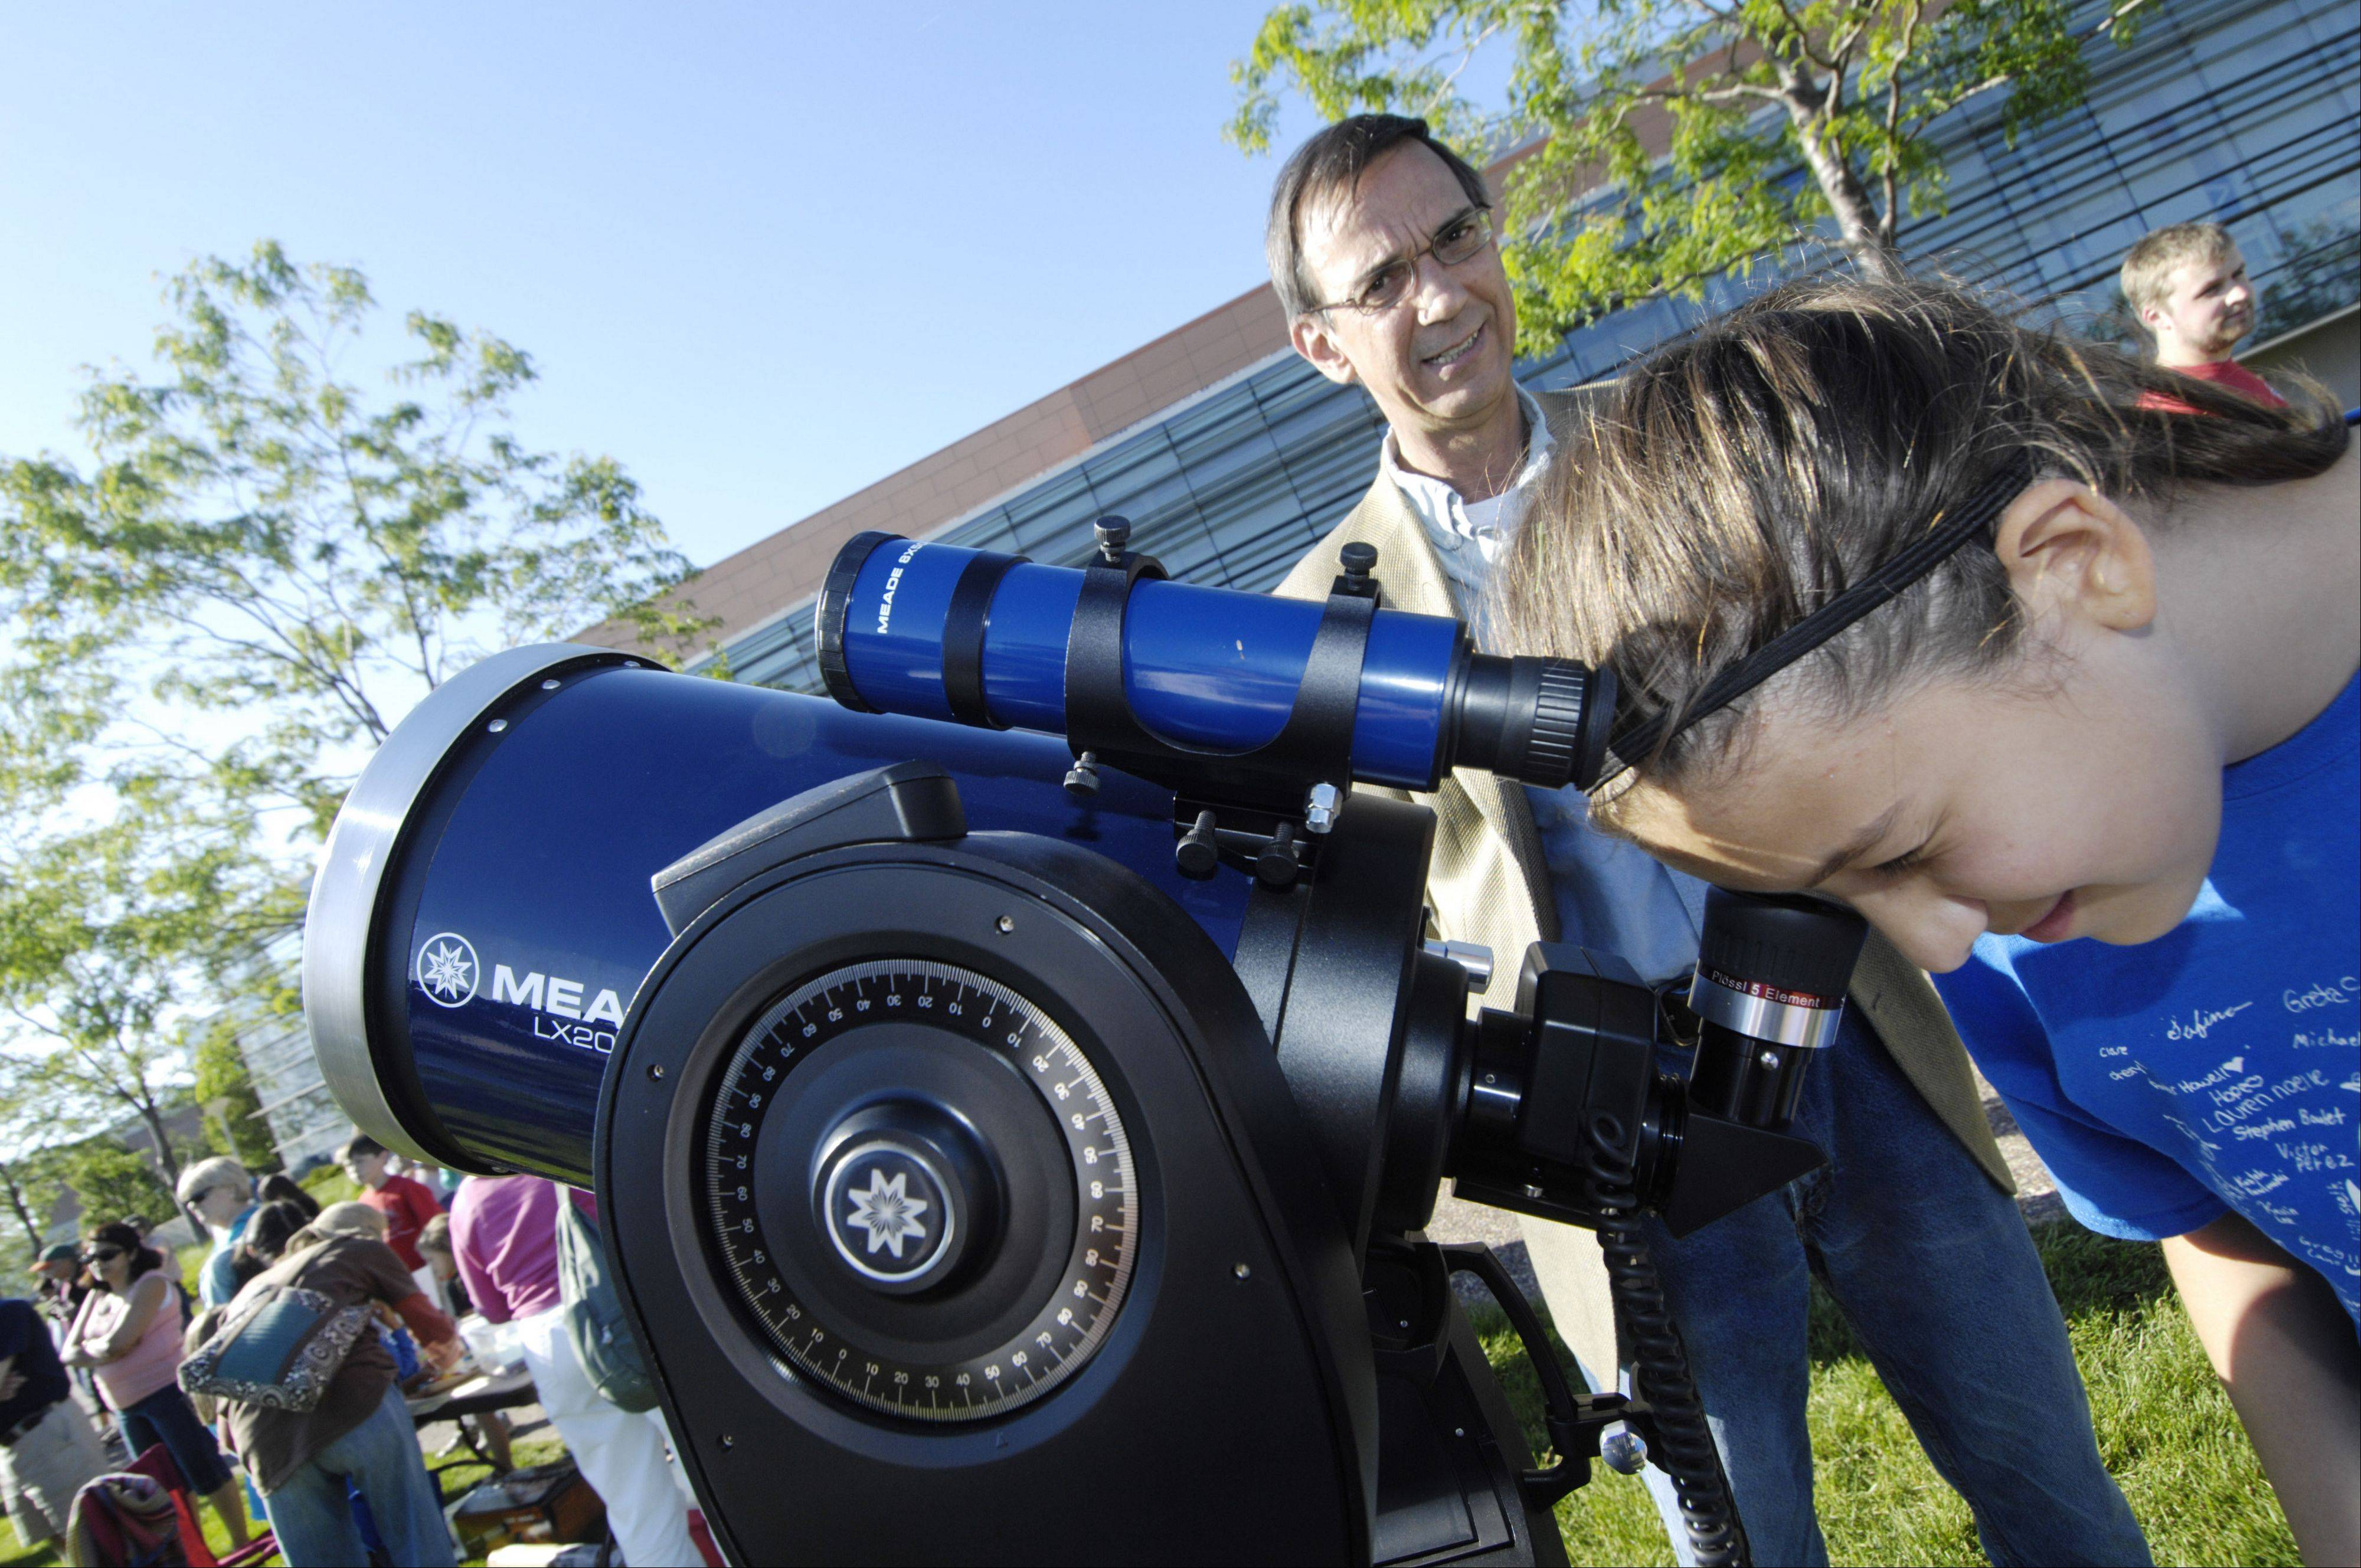 Alexandria Kapko, 12, of Palatine observes Venus crossing the face of the sun Tuesday evening. Palatine attorney James Wotal was there to help people lined up at the telescope find the planet during viewing of the event at Harper College.